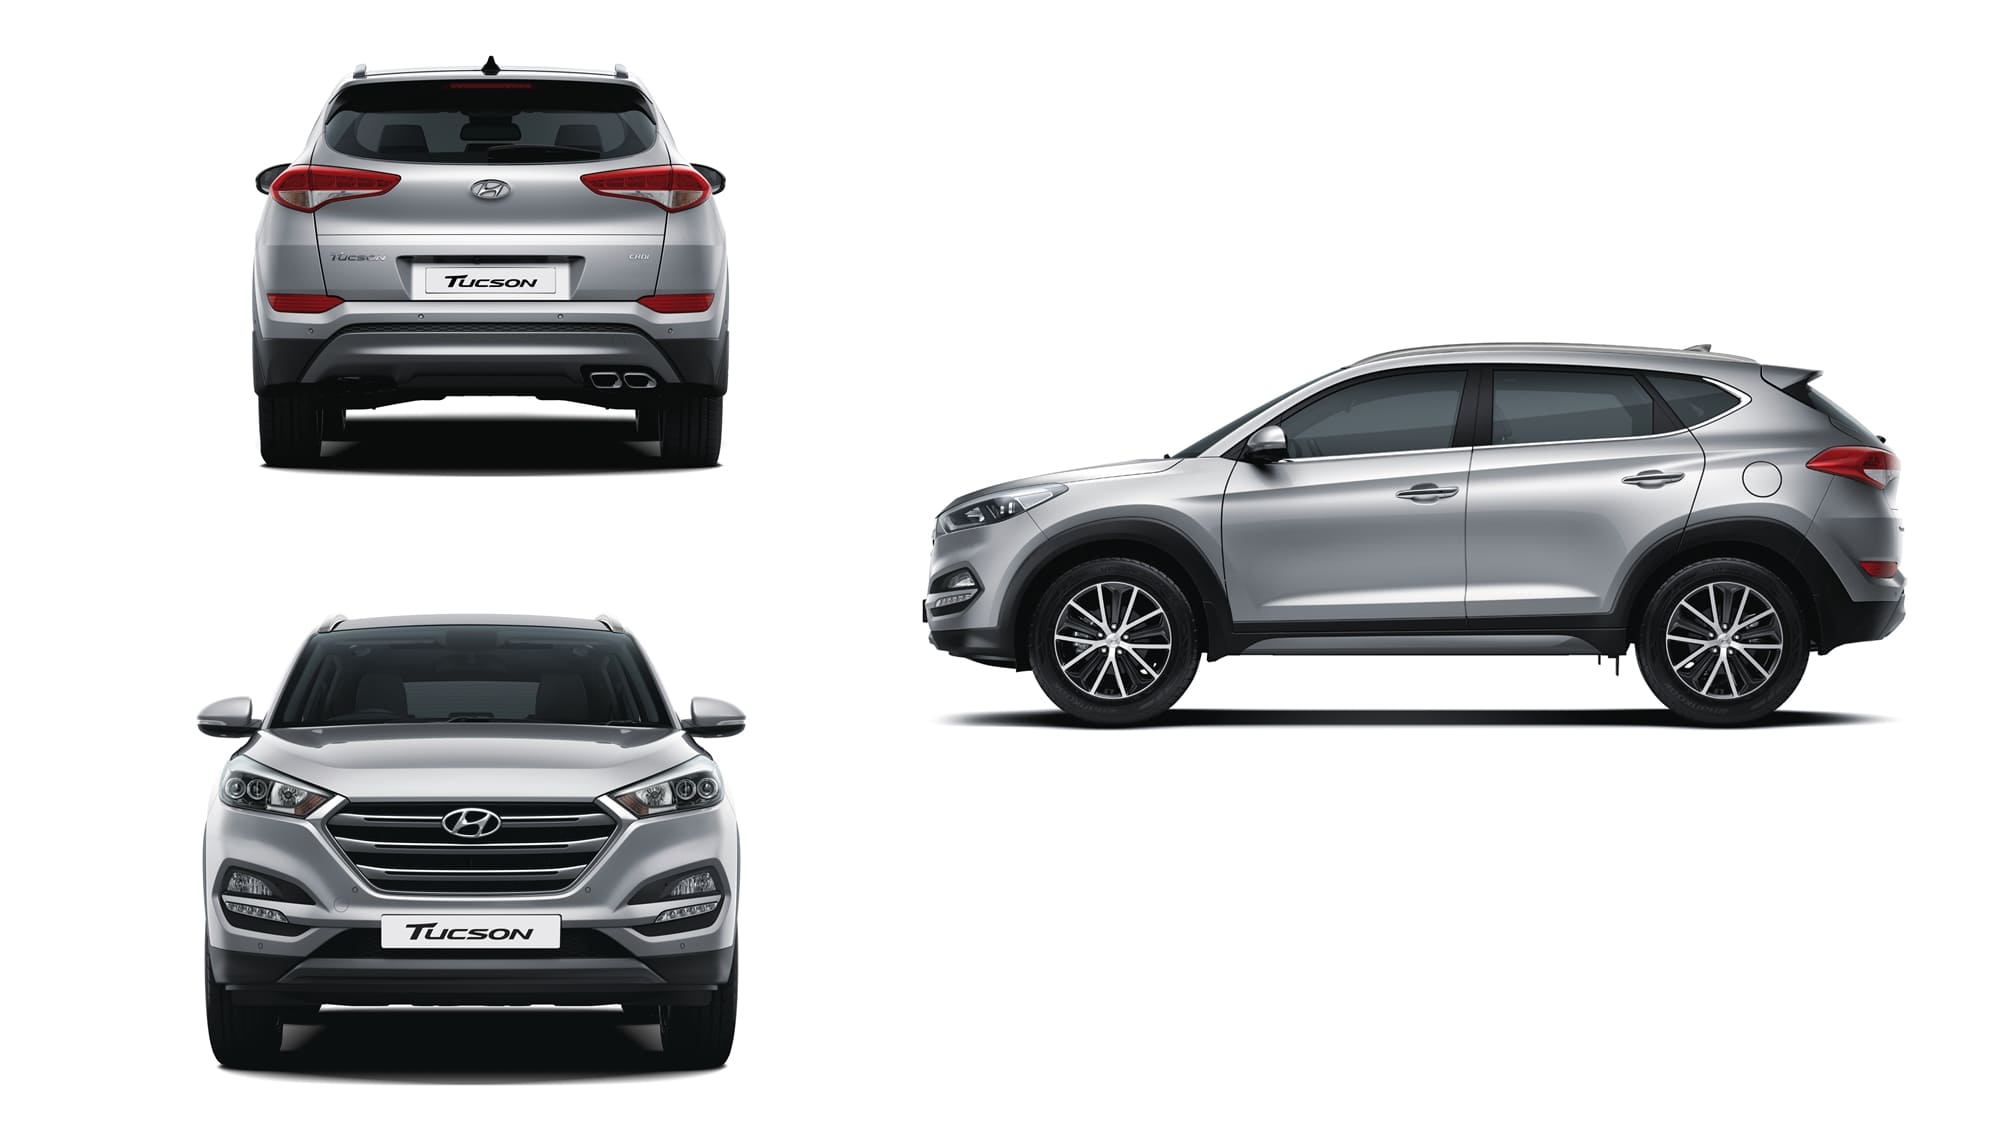 hyundai tucson 2017 launched in india variants price engine autopromag. Black Bedroom Furniture Sets. Home Design Ideas